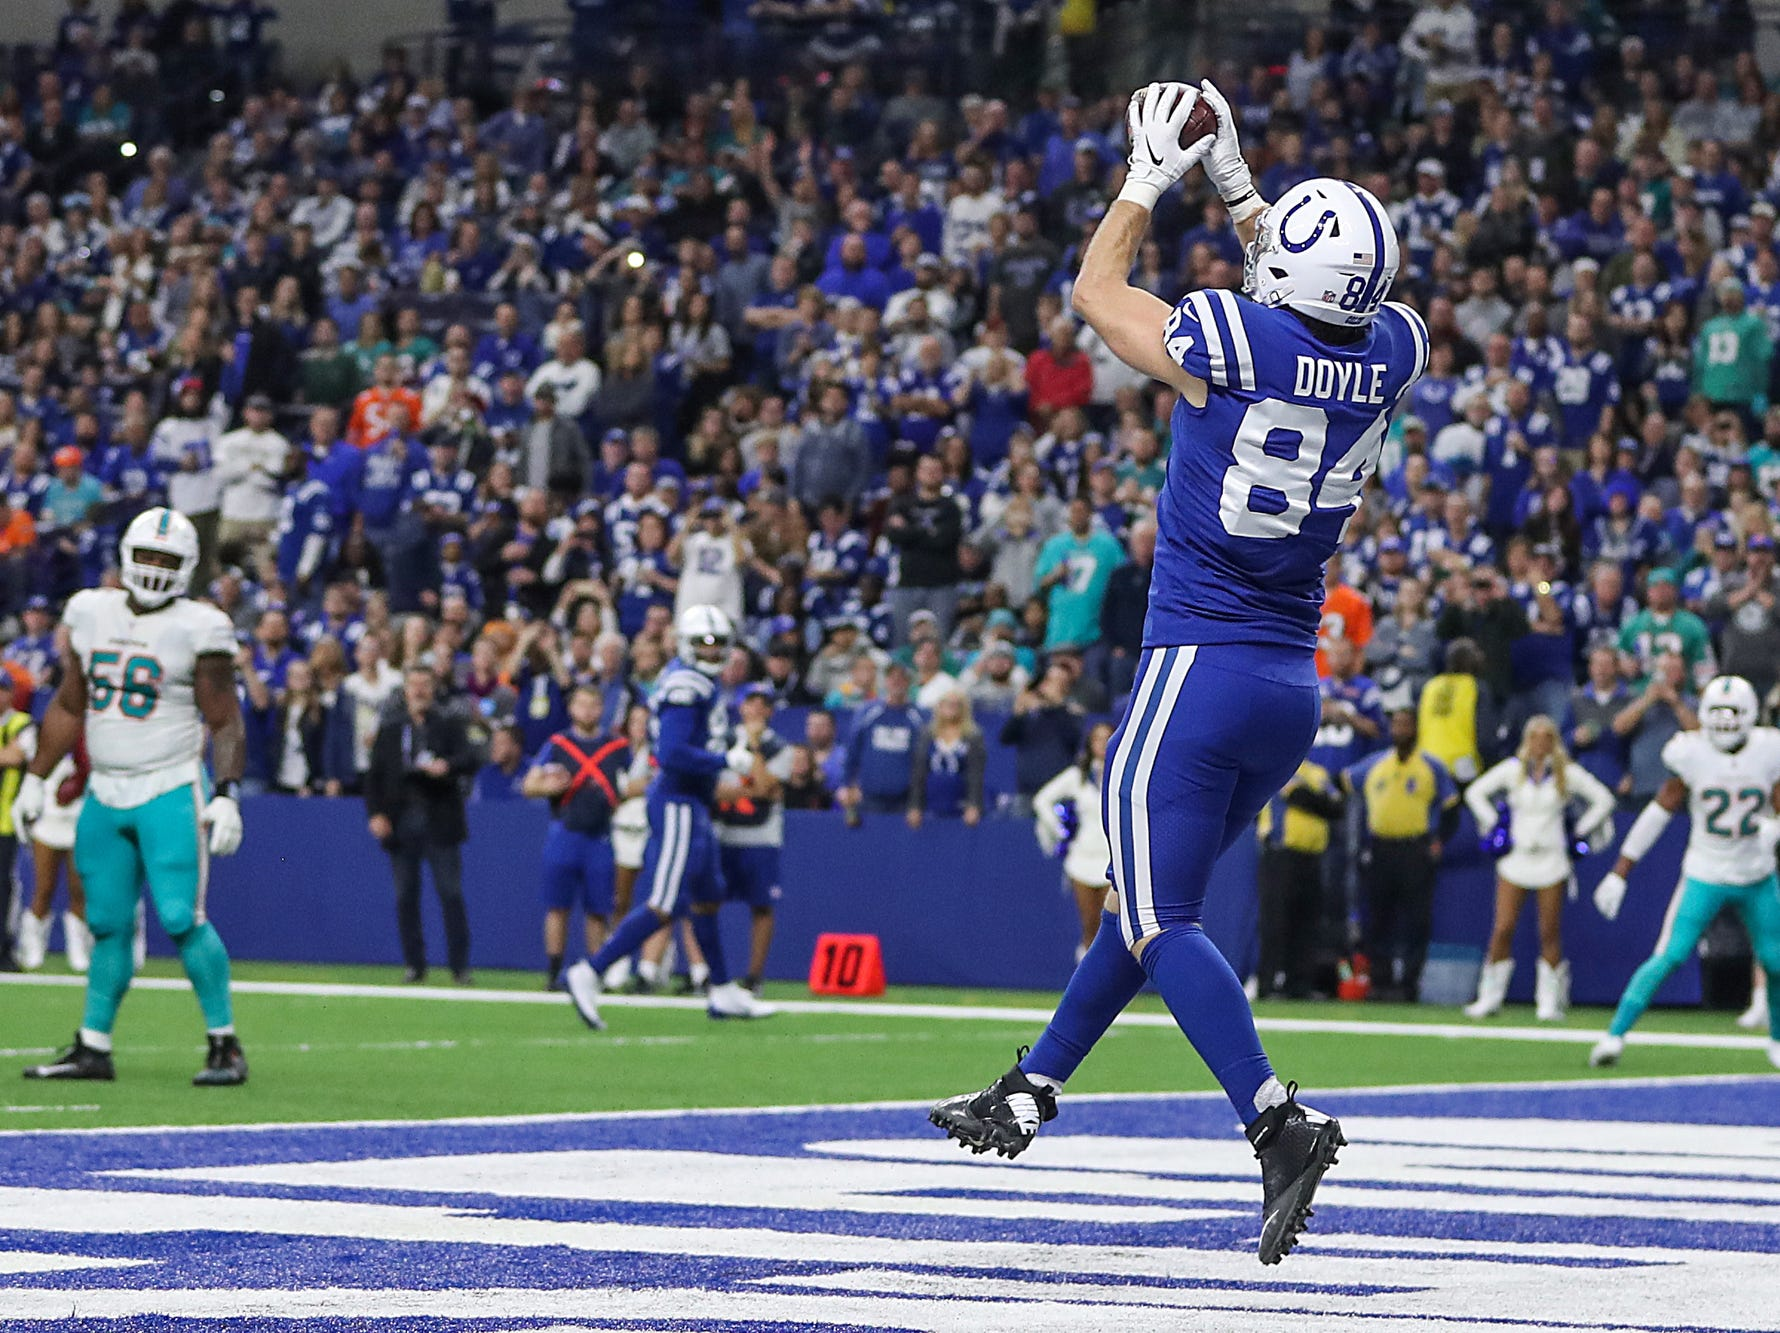 Indianapolis Colts tight end Jack Doyle (84) receives a touchdown pass during the first half of the game at Lucas Oil Stadium in Indianapolis, Sunday, Nov. 25, 2018. The Colts won, 27-24.